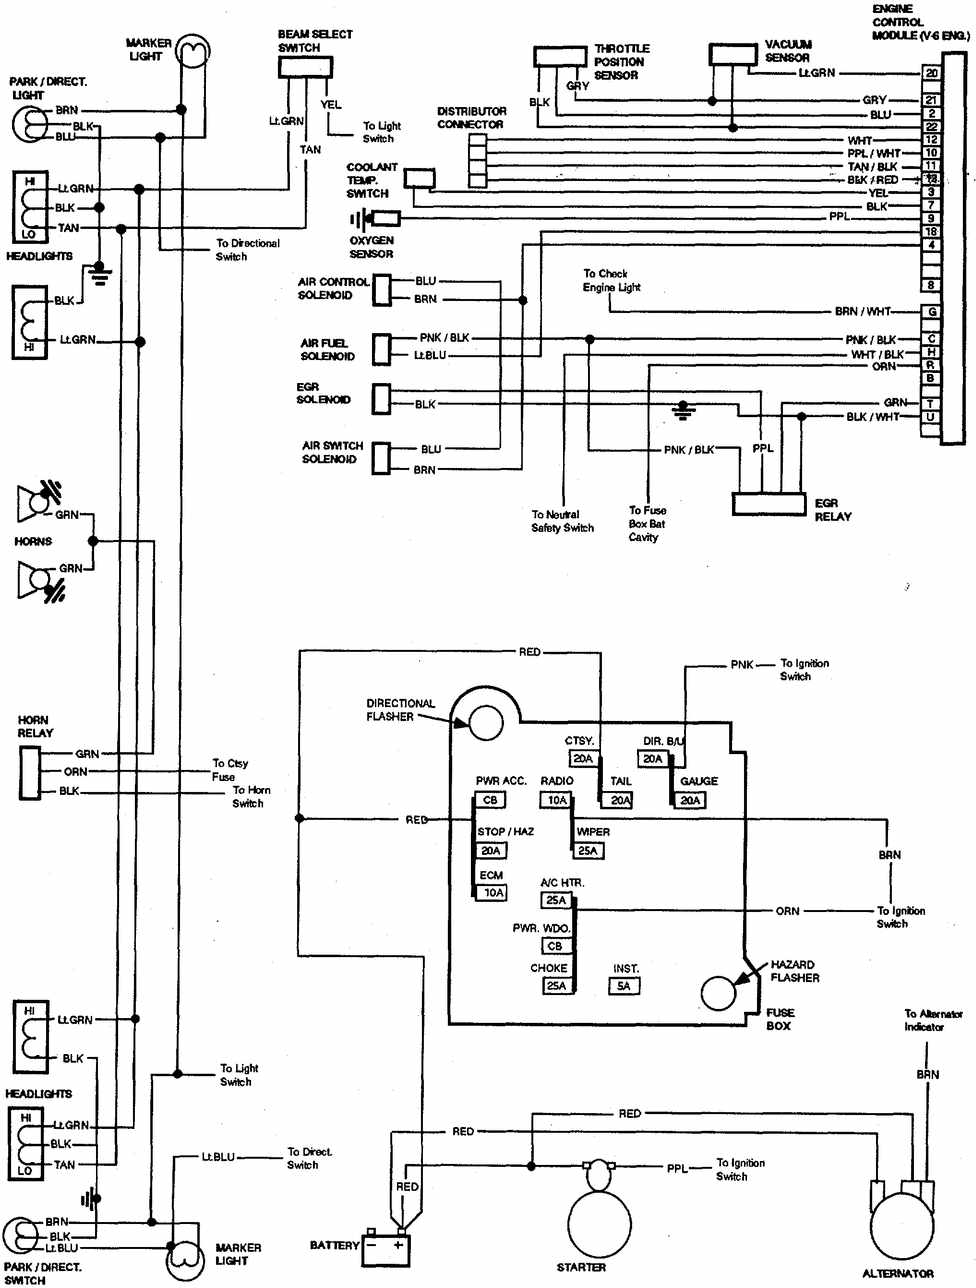 1987 chevy pickup 5 7 engine ignition wiring diagram